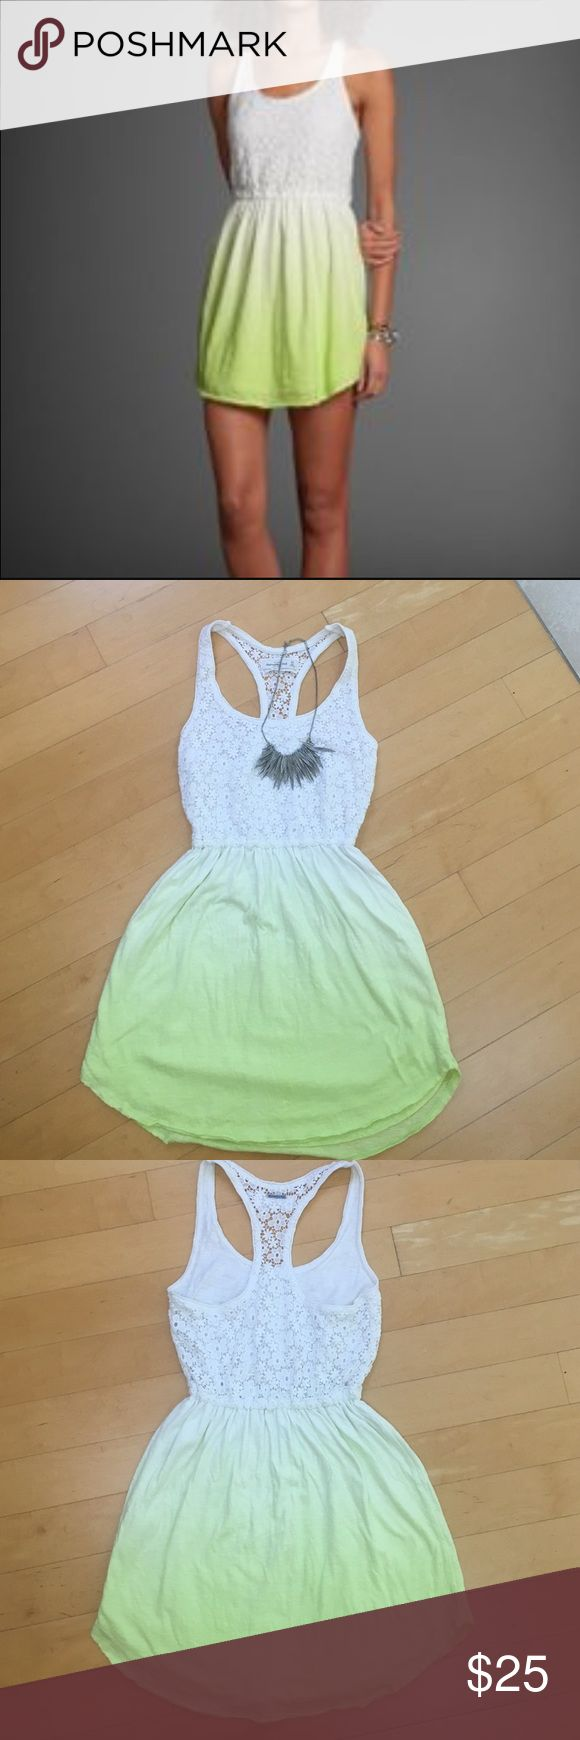 """Neon Ombré Dress You know when you want to look cute but you also want to be super comfortable? This dress is the answer! The floral patterned crochet lace on the bodice so pretty. Racerback style with lining in the front and elastic waist. The bottom half of the dress is an ombré pattern of white and neon green. It's made from a double lined T-shirt like material so it's not see through. Raw edge shirt tail hem. 14"""" across and 28"""" long at its shortest and 30.5"""" at the longest point…"""